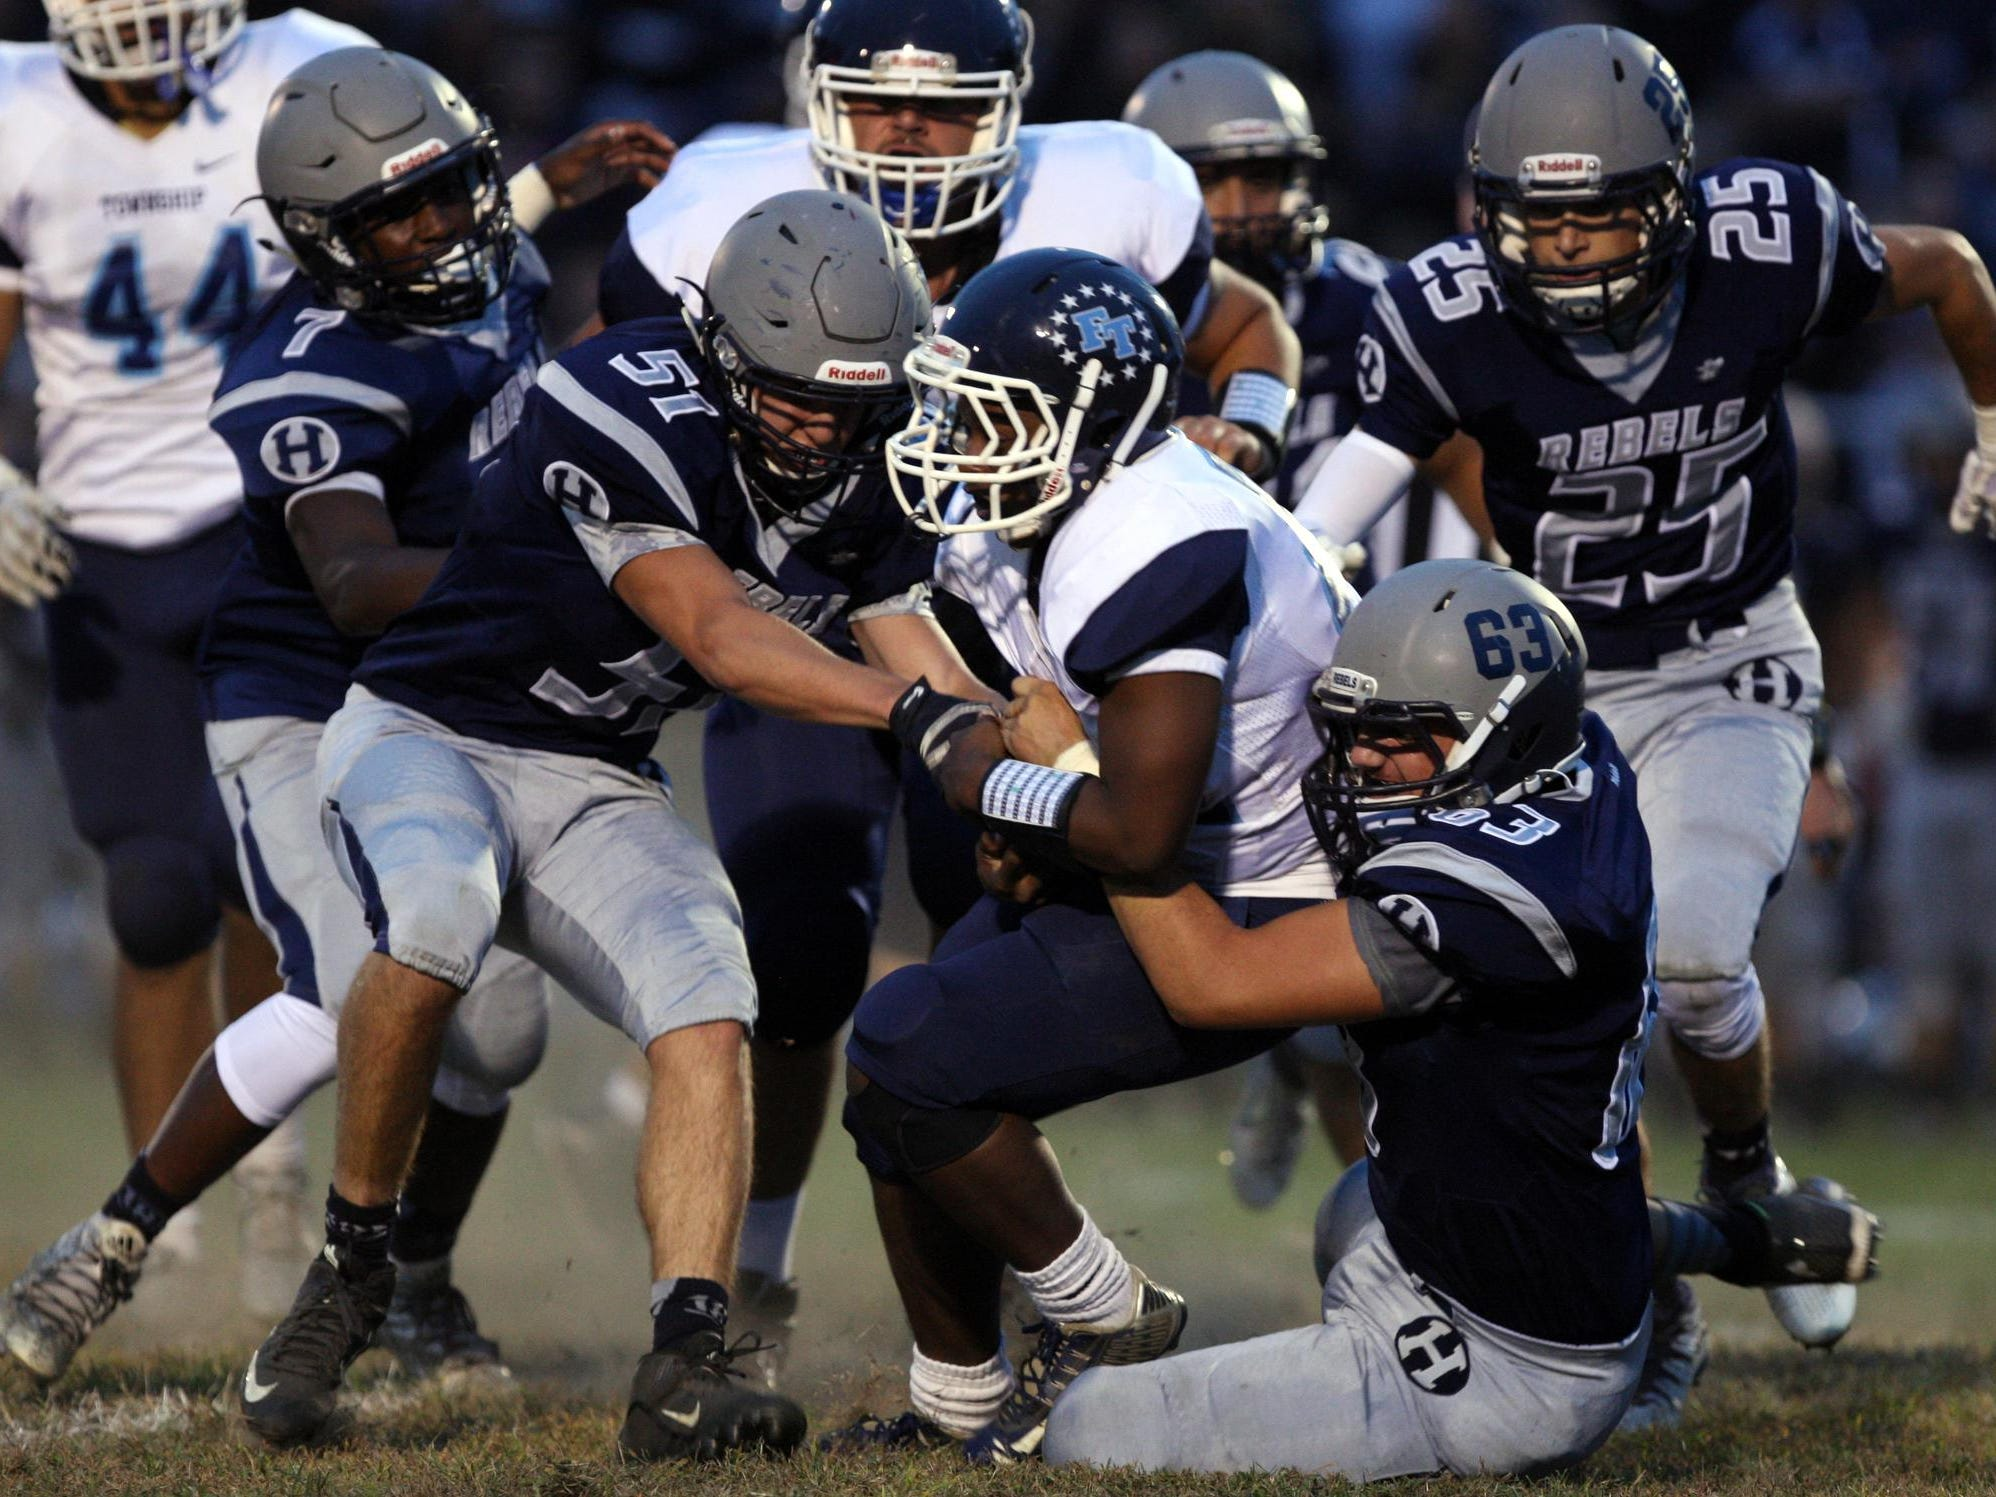 Rychard Hanshaw, #22 Freehold Township, is tackled by Conor Devine, #51 Howell, left, and Michael Ioannides, #63, right, and other defenders in a football game Friday, September 25, 2015, at Howell High School.